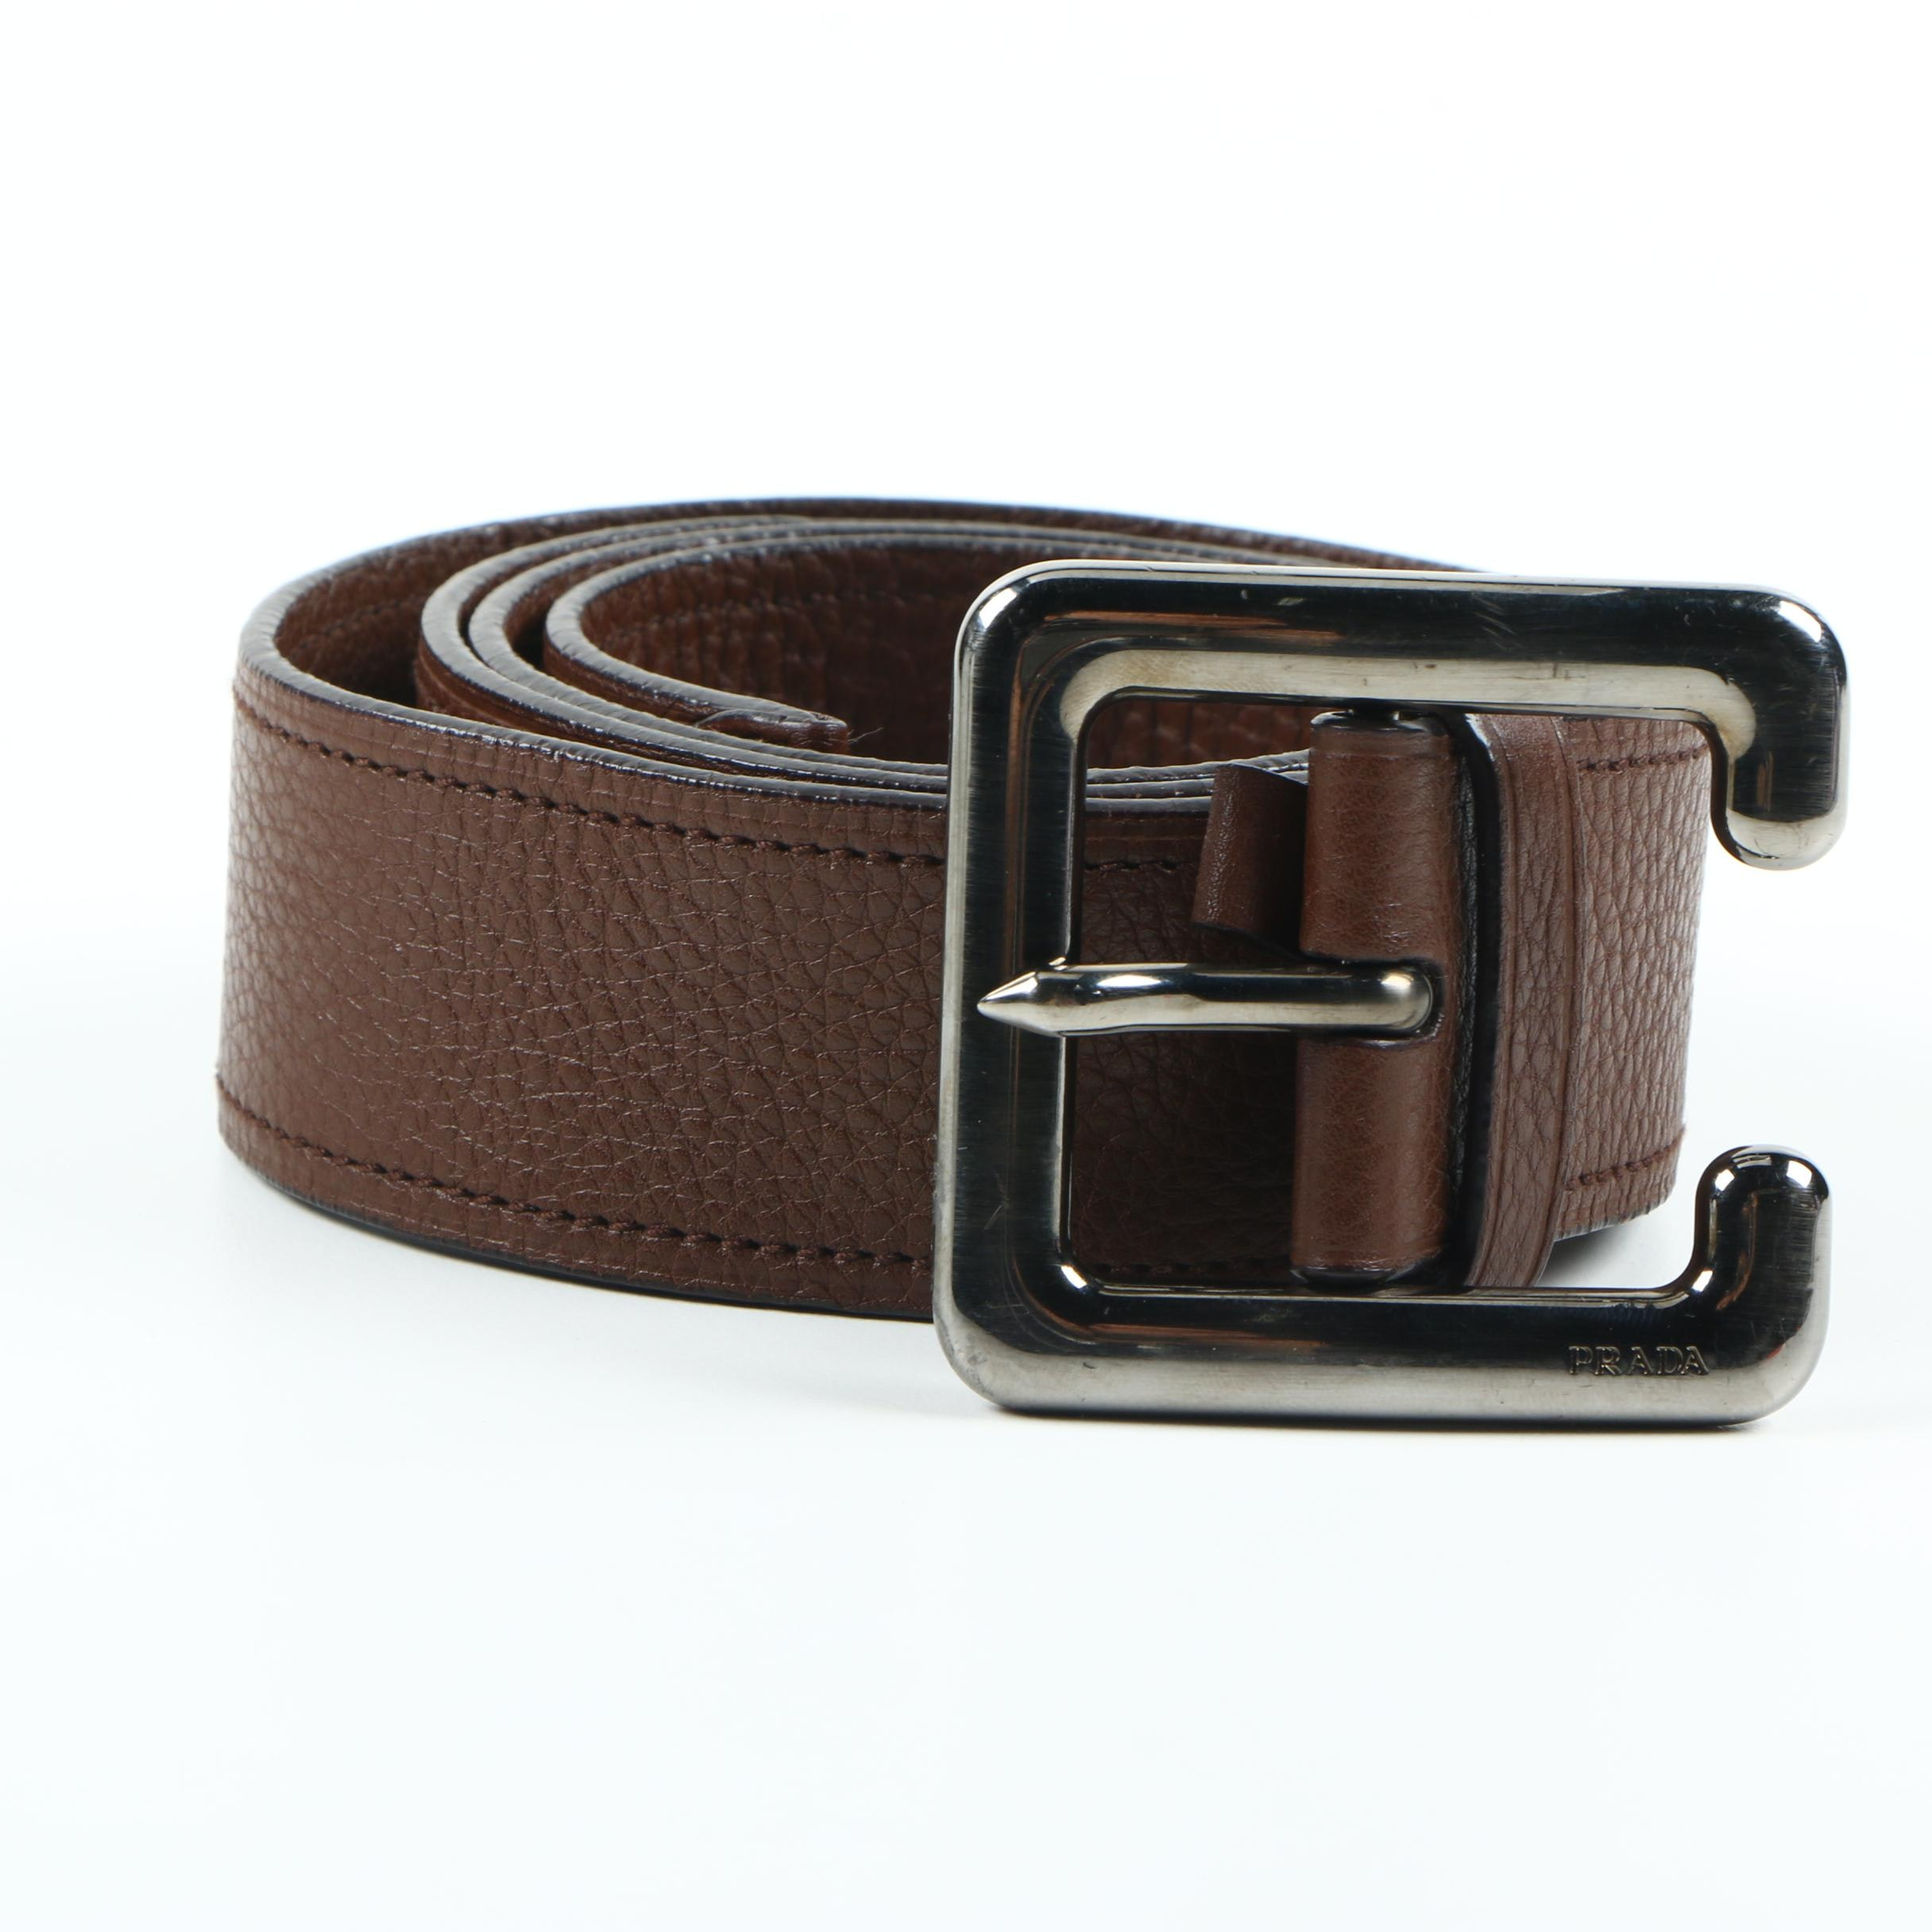 Women's Prada Brown Leather Belt